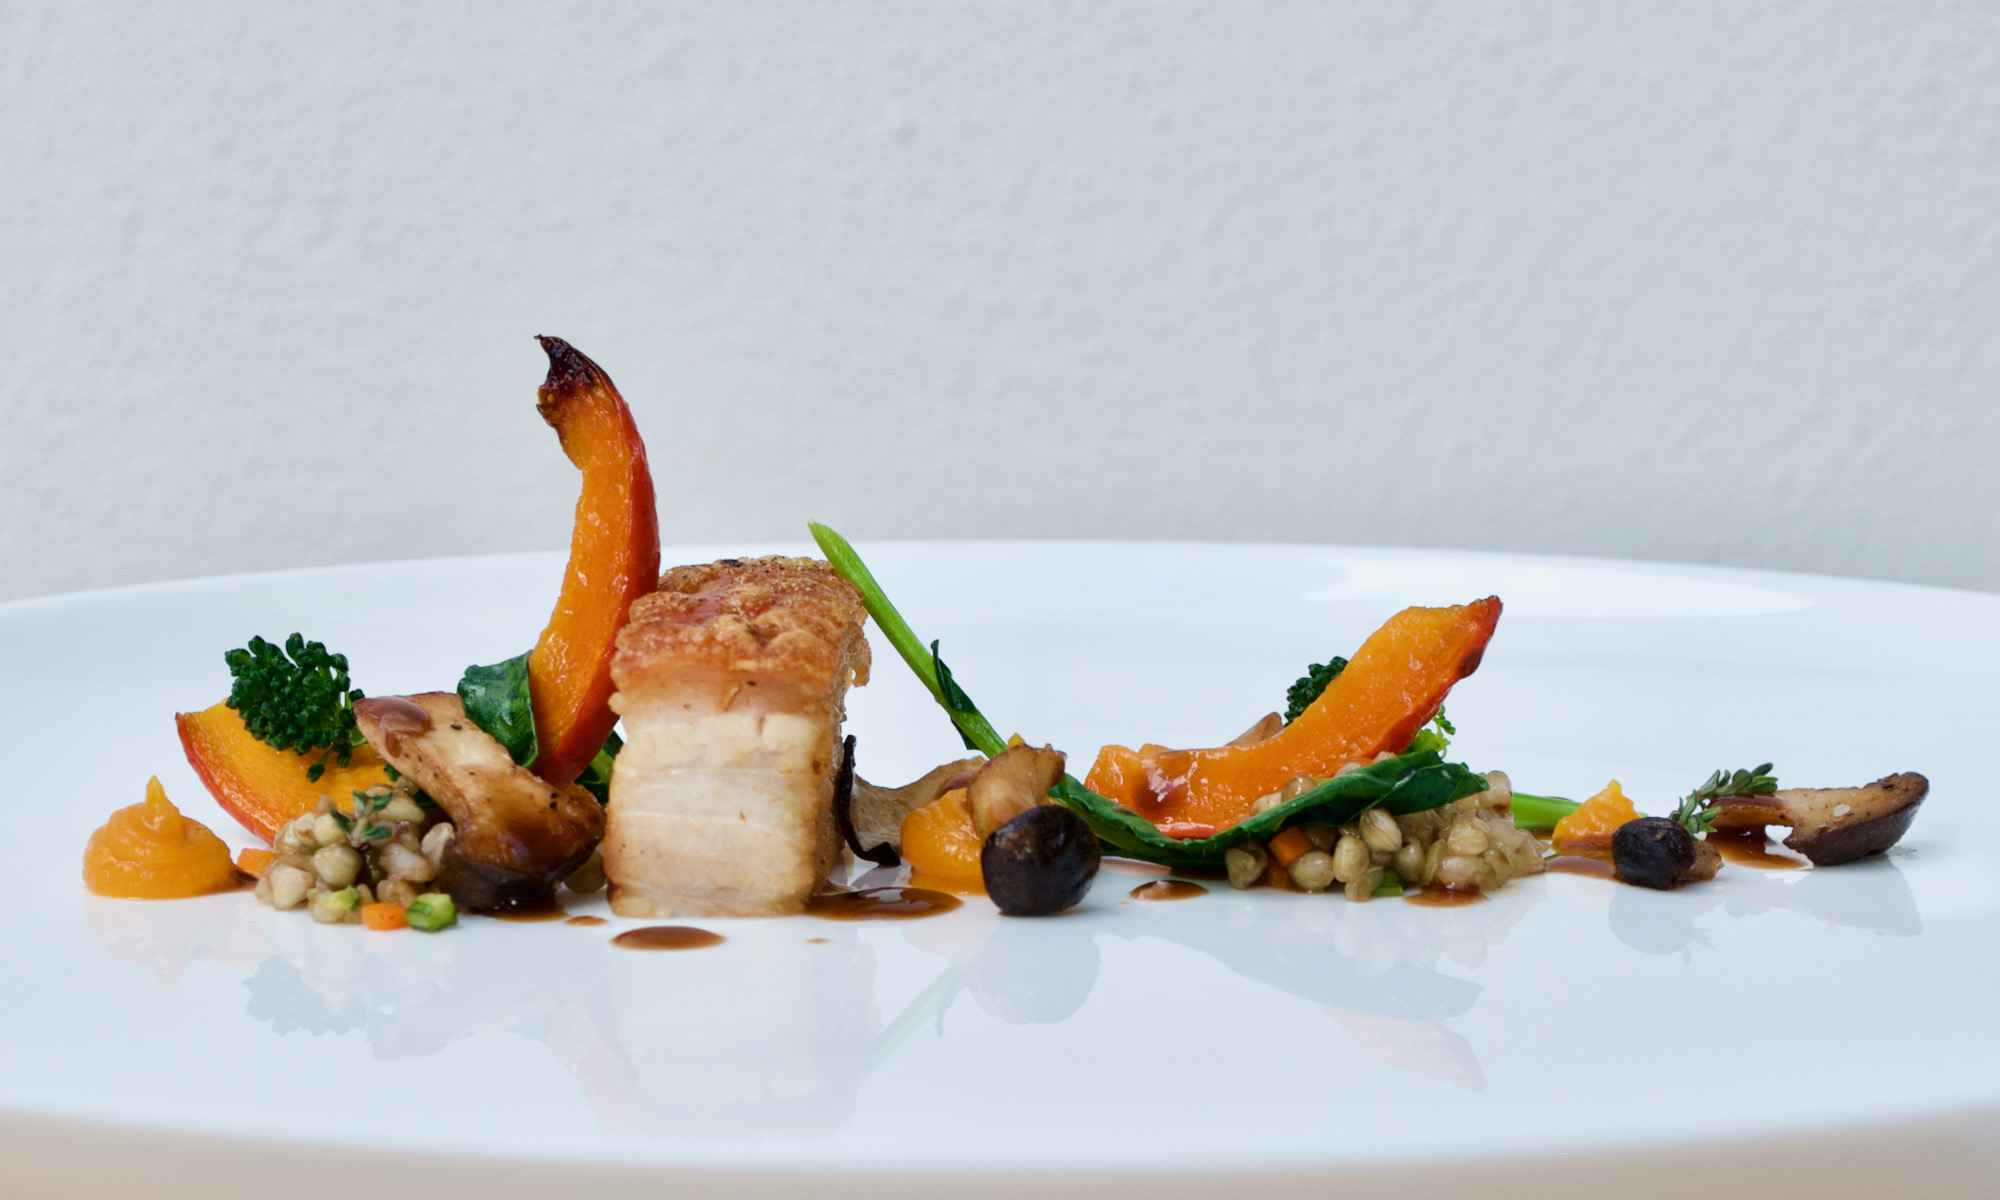 Pollensa Private Chefs - Food - Pork belly, roast squash with buckwheat